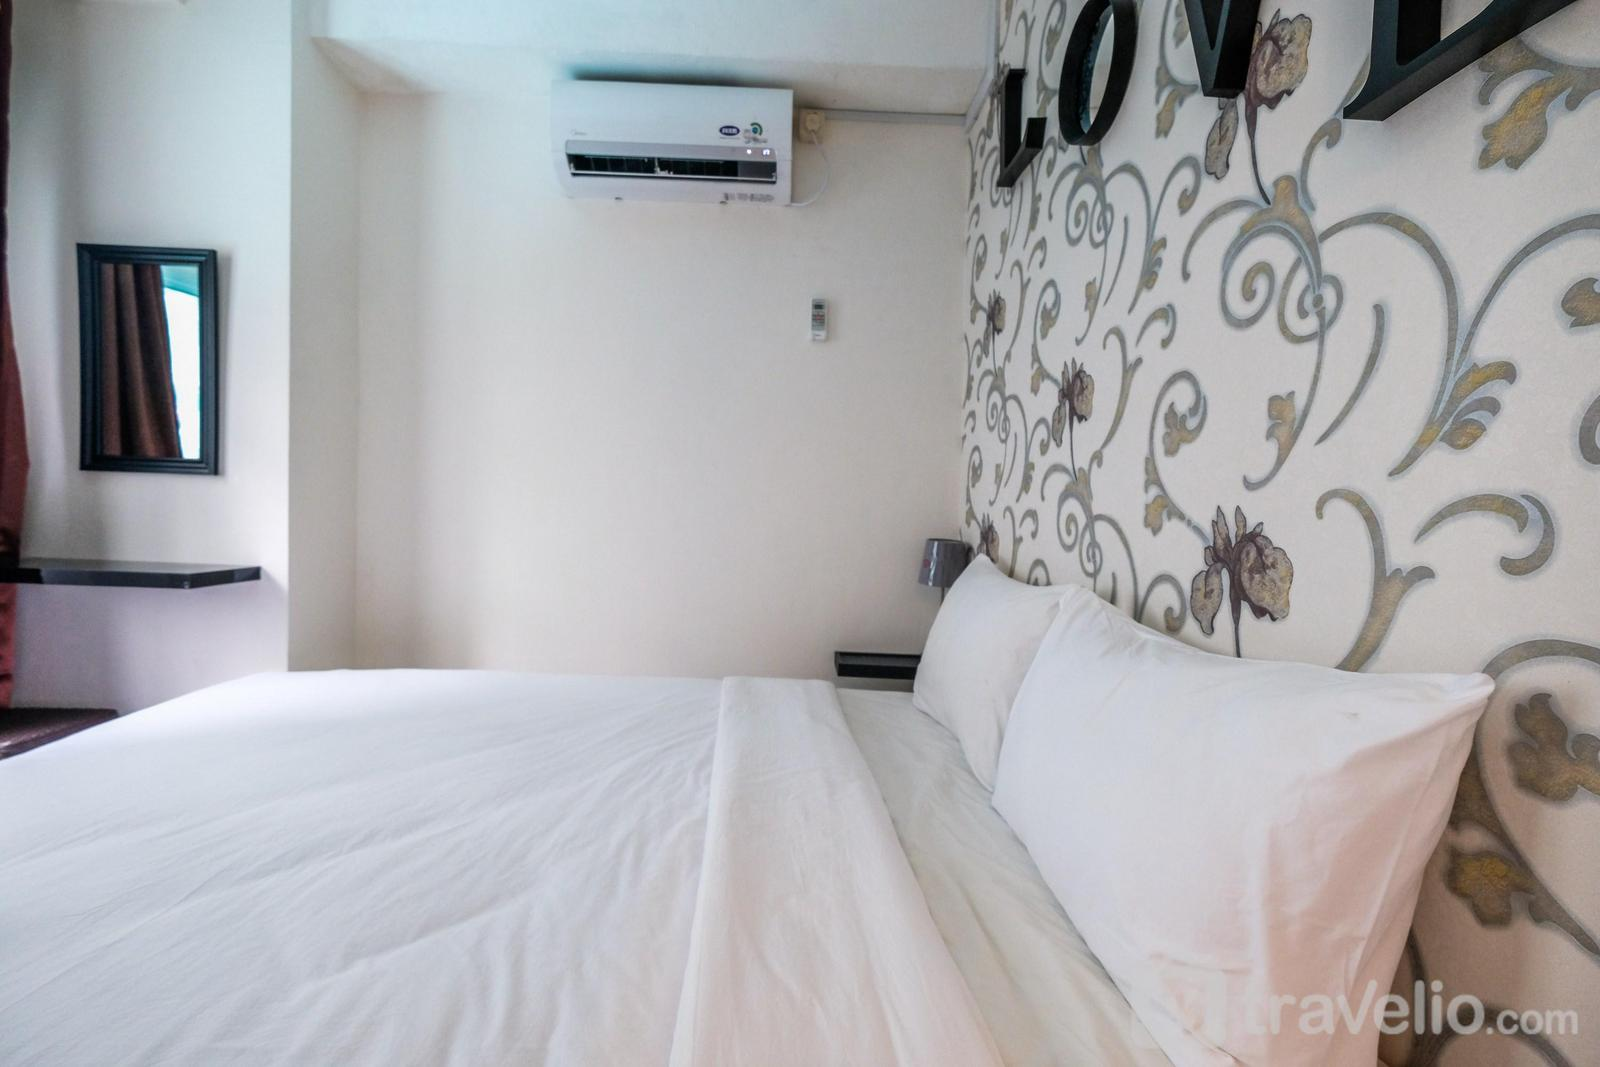 Paragon Village - Exclusive Best View 2BR Paragon Village Apartment By Travelio